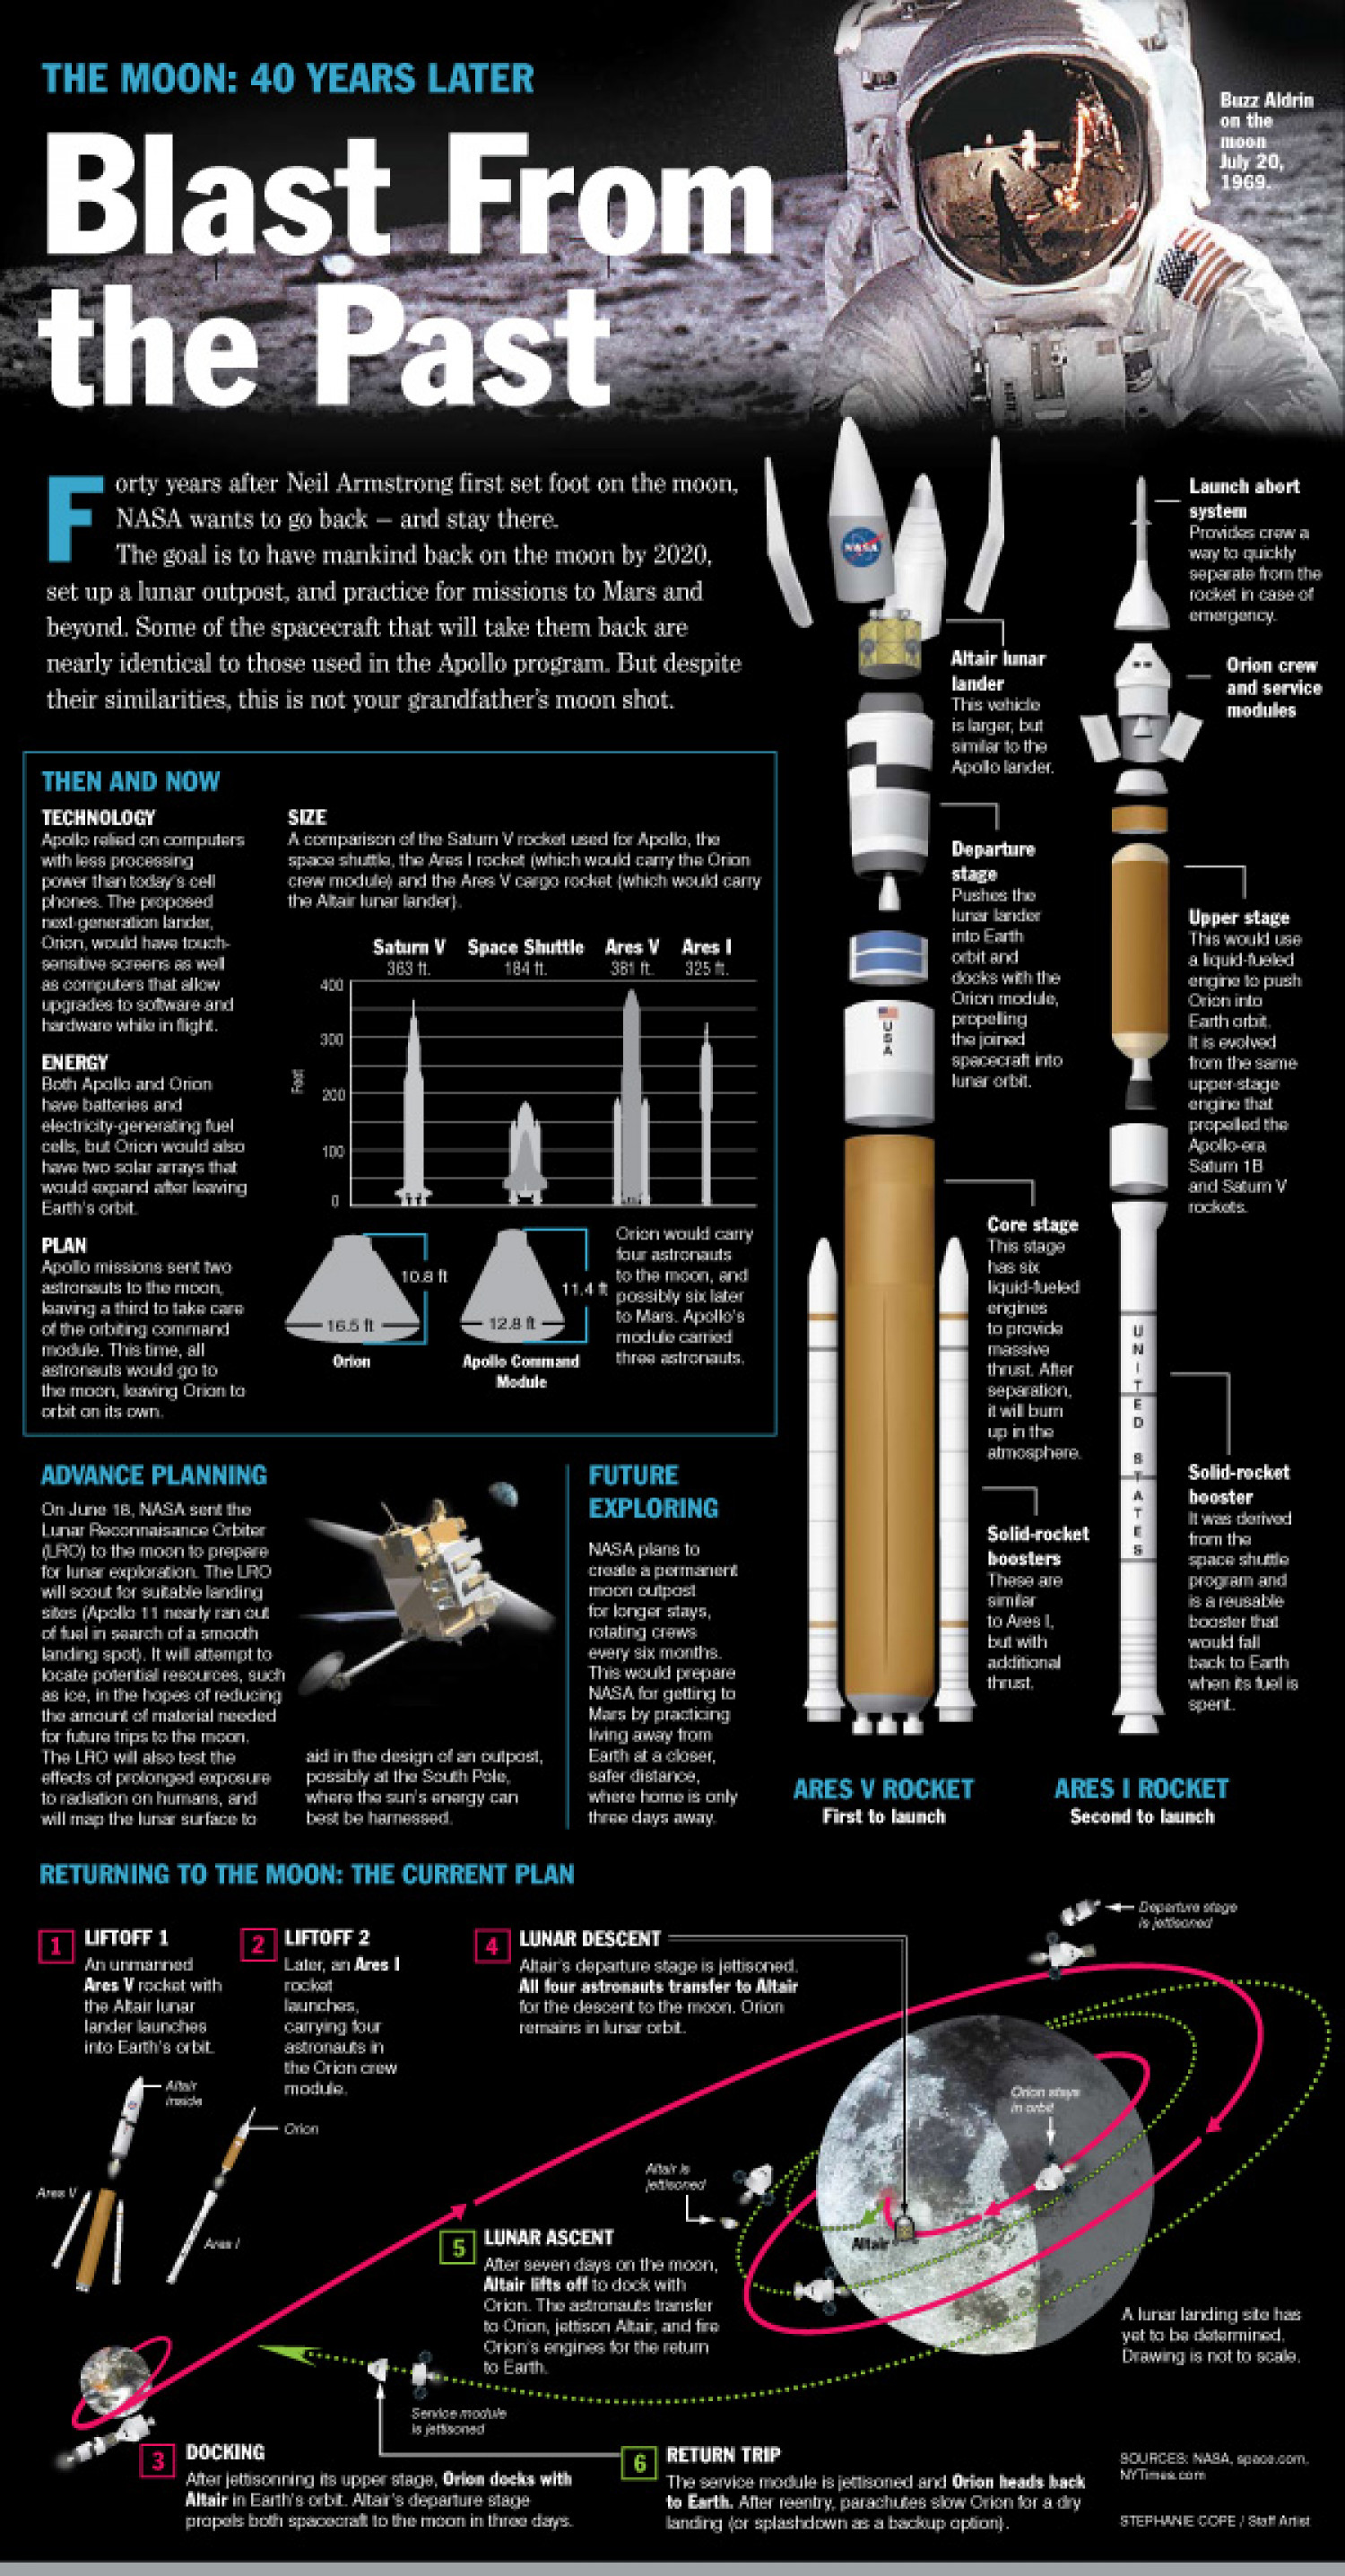 Blast From The Past Infographic